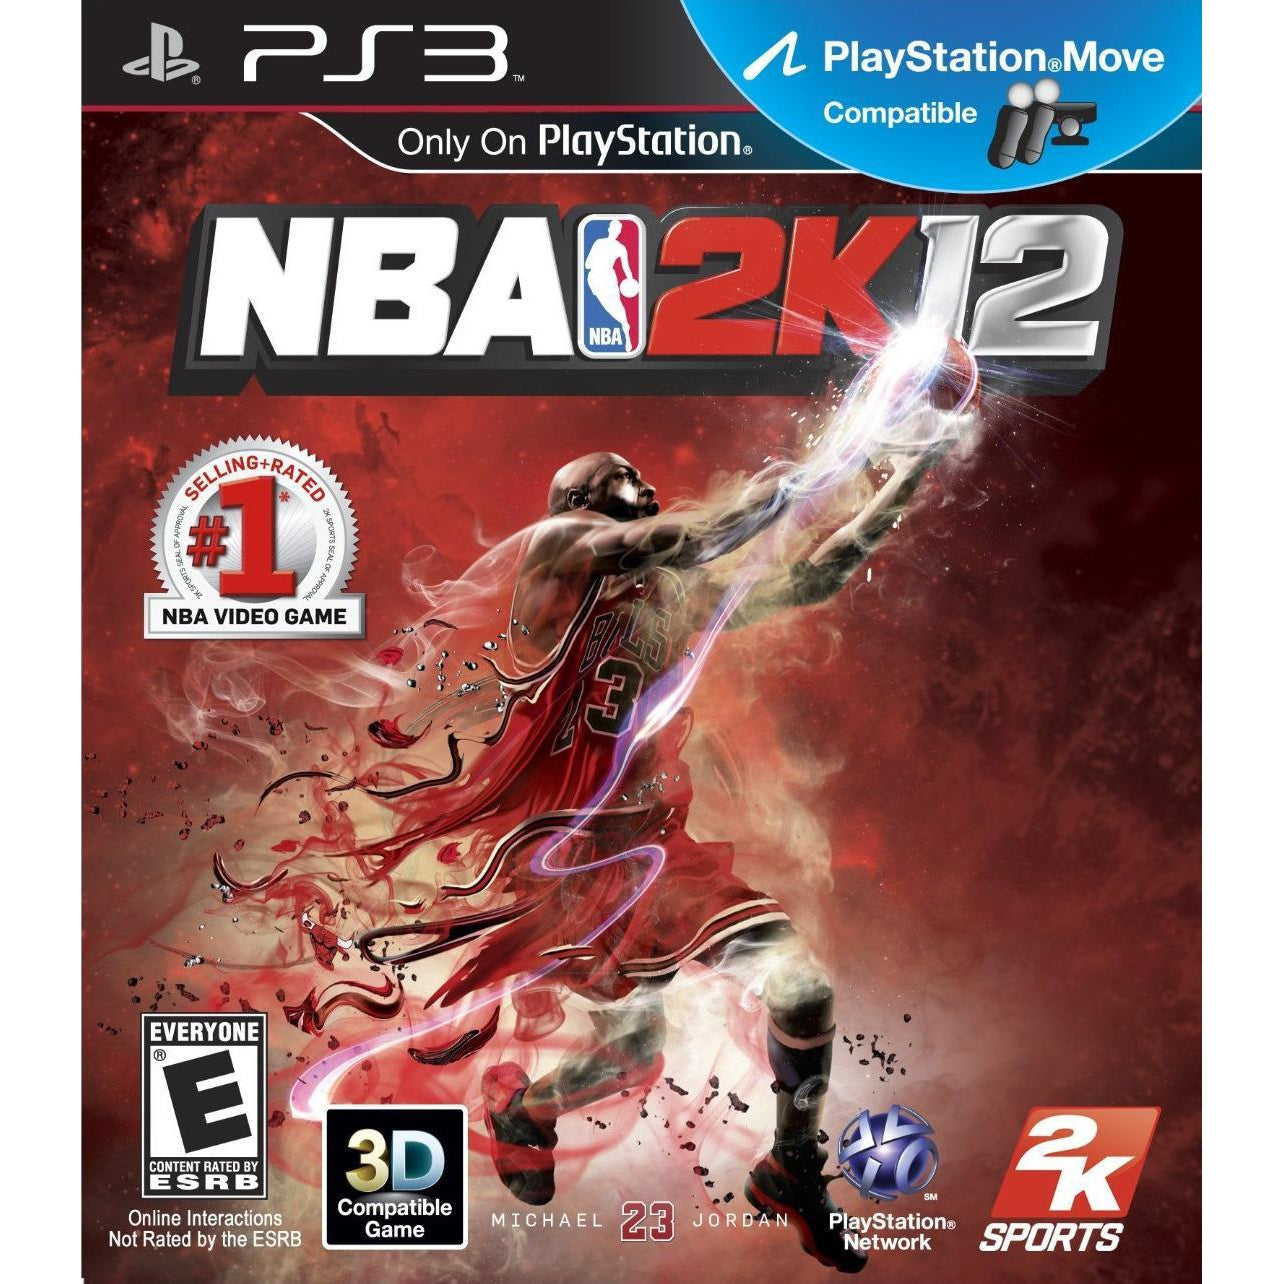 NBA 2K12 - PlayStation 3 (PS3) Game Complete - YourGamingShop.com - Buy, Sell, Trade Video Games Online. 120 Day Warranty. Satisfaction Guaranteed.